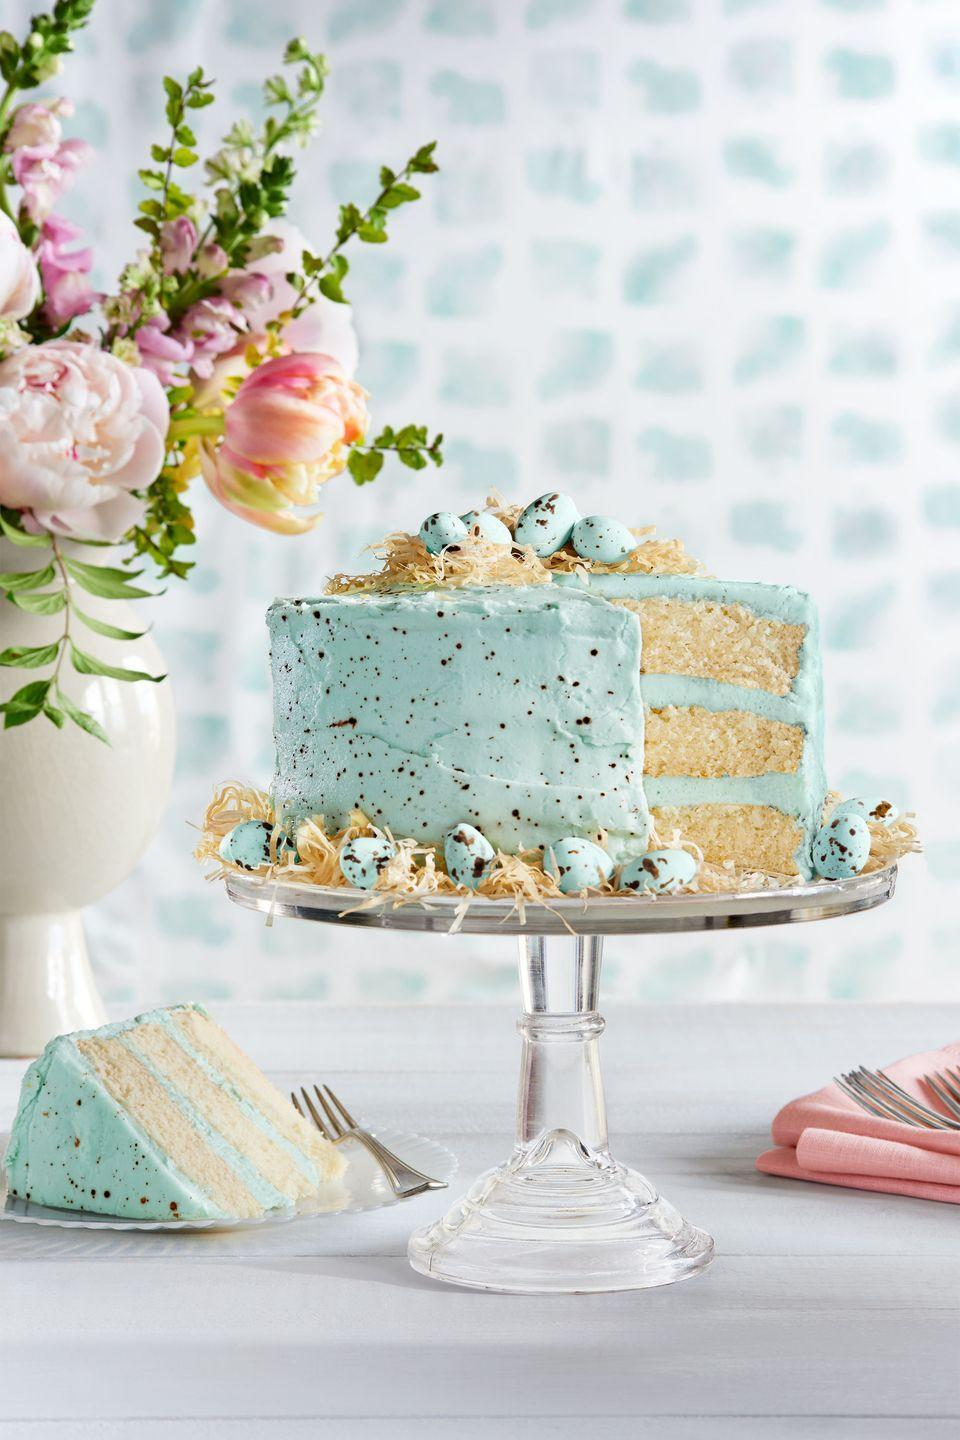 "<p>This cake is one of the most popular desserts we've ever made. </p><p><strong><a href=""https://www.countryliving.com/food-drinks/recipes/a37729/speckled-malted-coconut-cake-recipe/"" rel=""nofollow noopener"" target=""_blank"" data-ylk=""slk:Get the recipe"" class=""link rapid-noclick-resp"">Get the recipe</a>.</strong></p>"